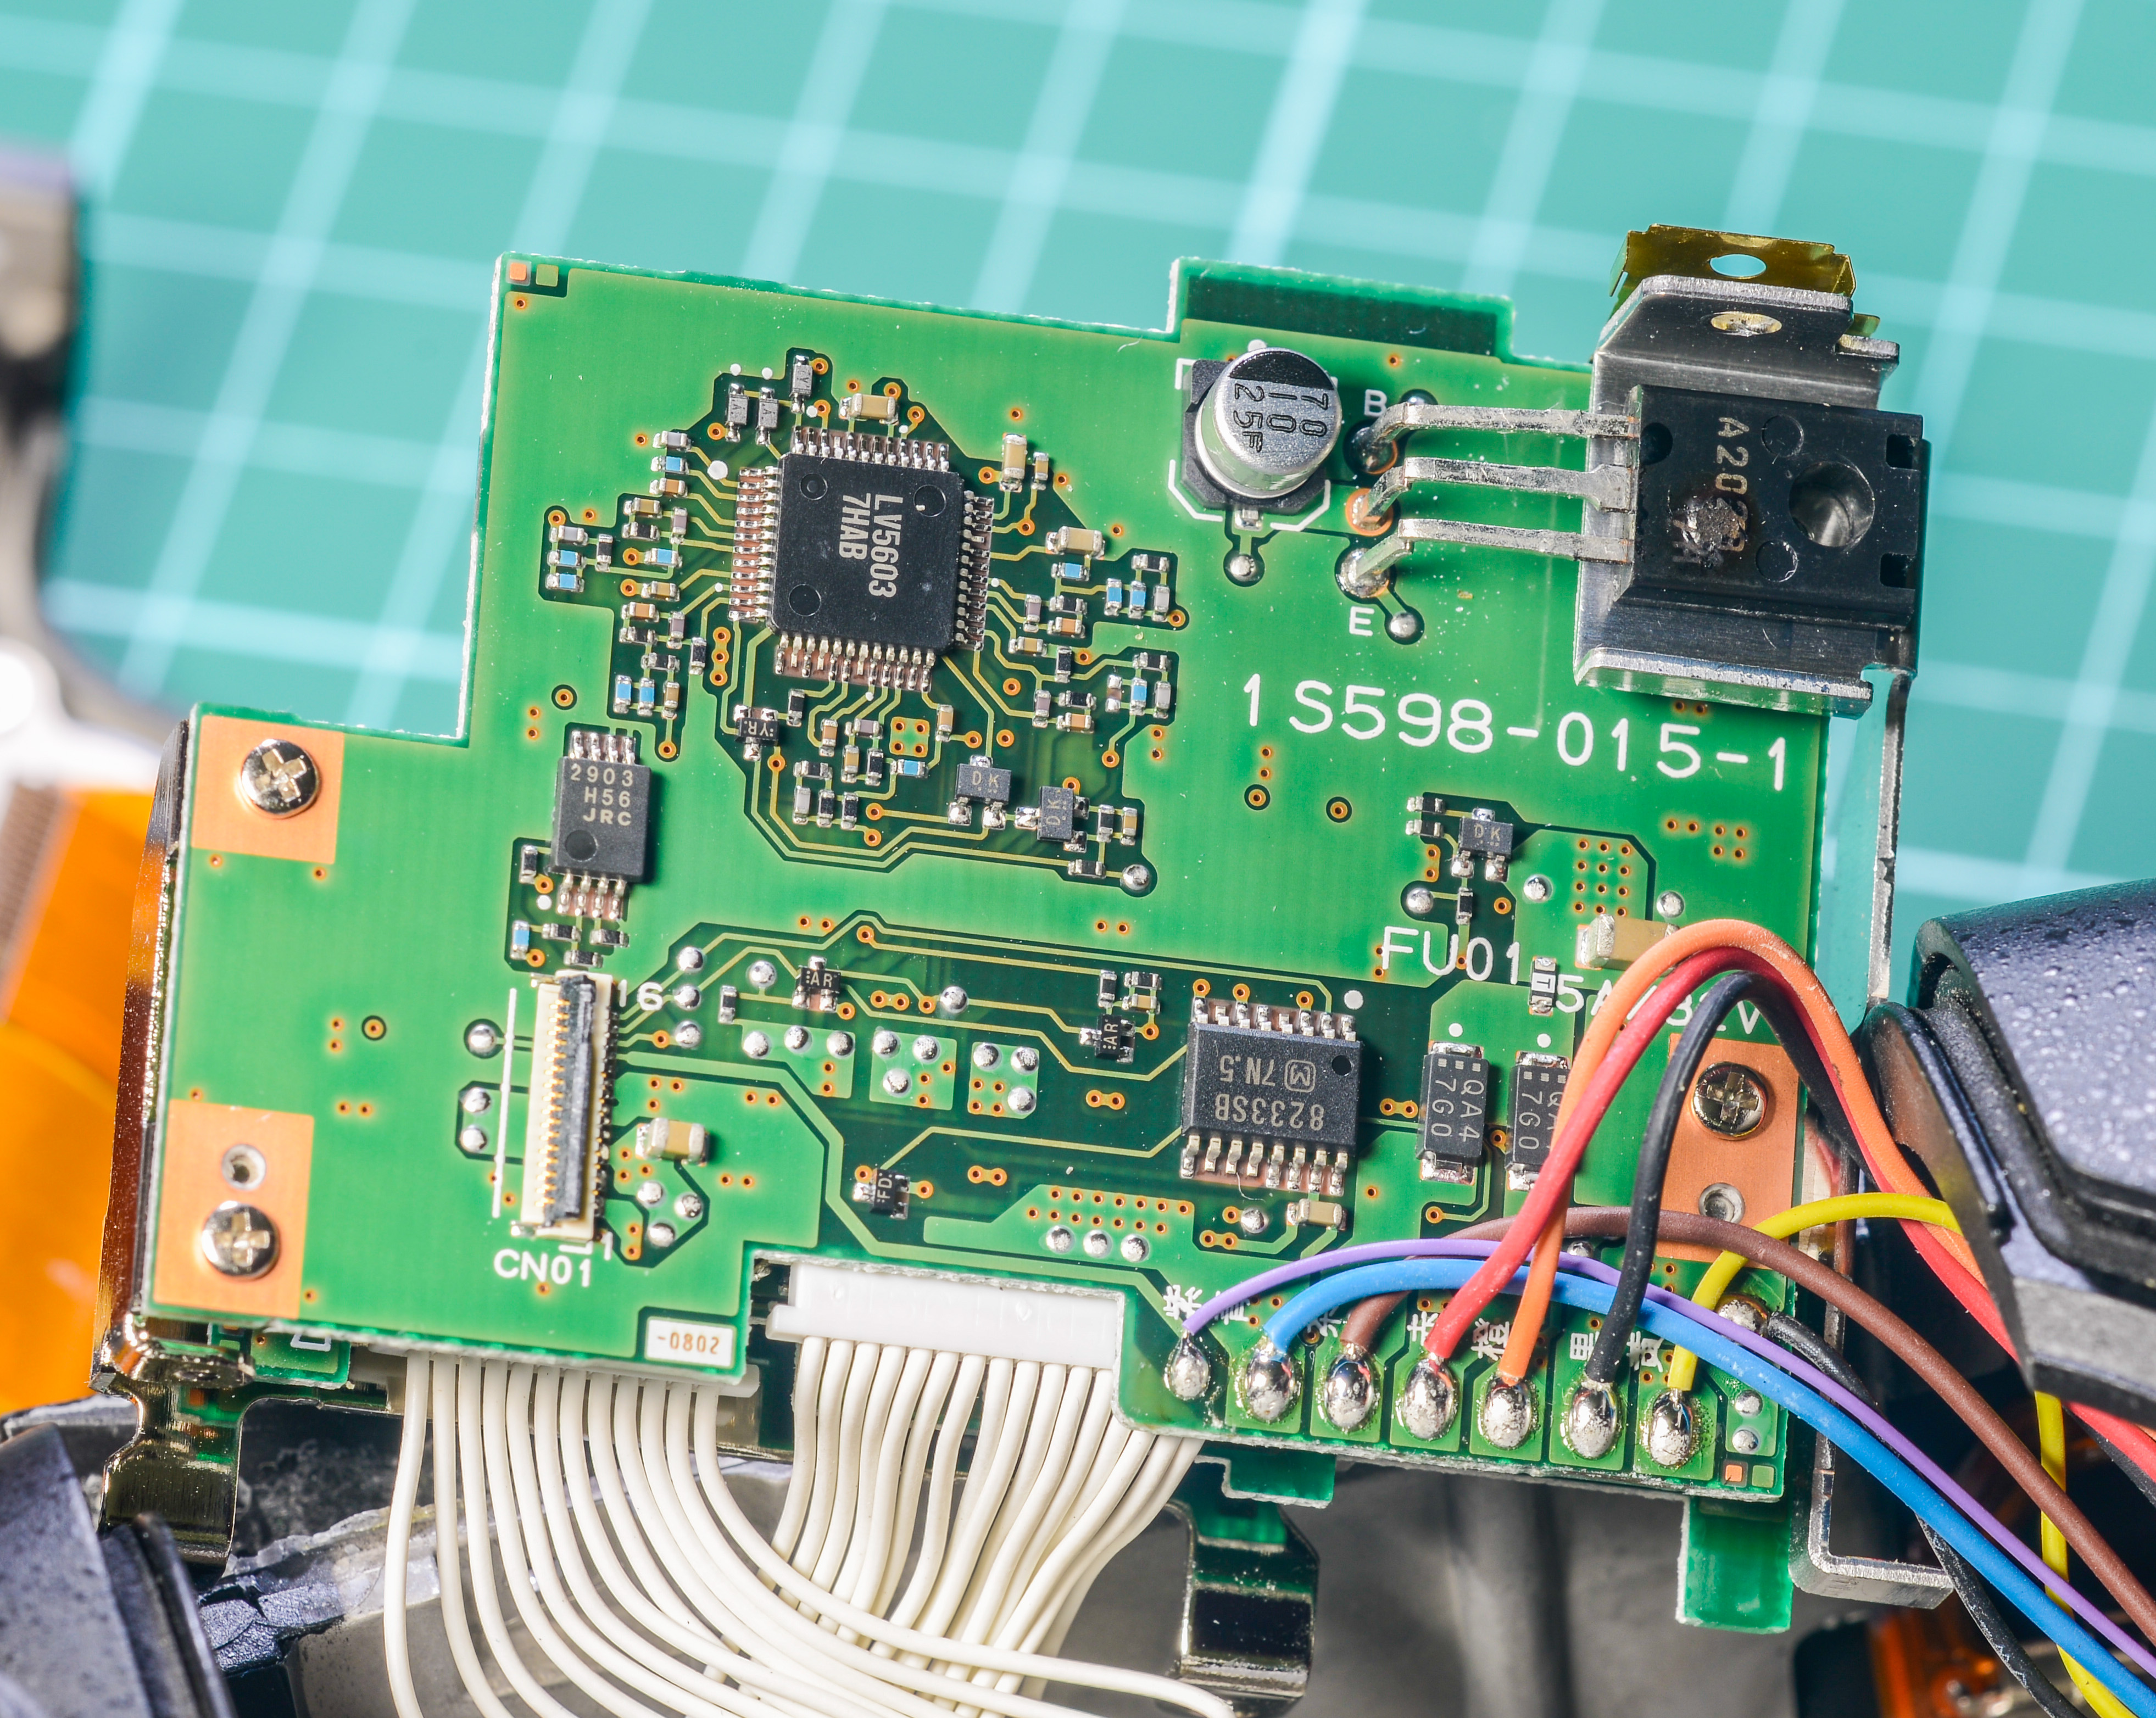 Repair Experience For Nikon D3 Body Wiring Diagram 36 Volt Power Wise Charger Board Aha Thats Where Magic Smoke Escaped Look At That Component In Top Right Side With A Good Burnt Blob On It Its A2023 Marked To225 Packaged Transistor